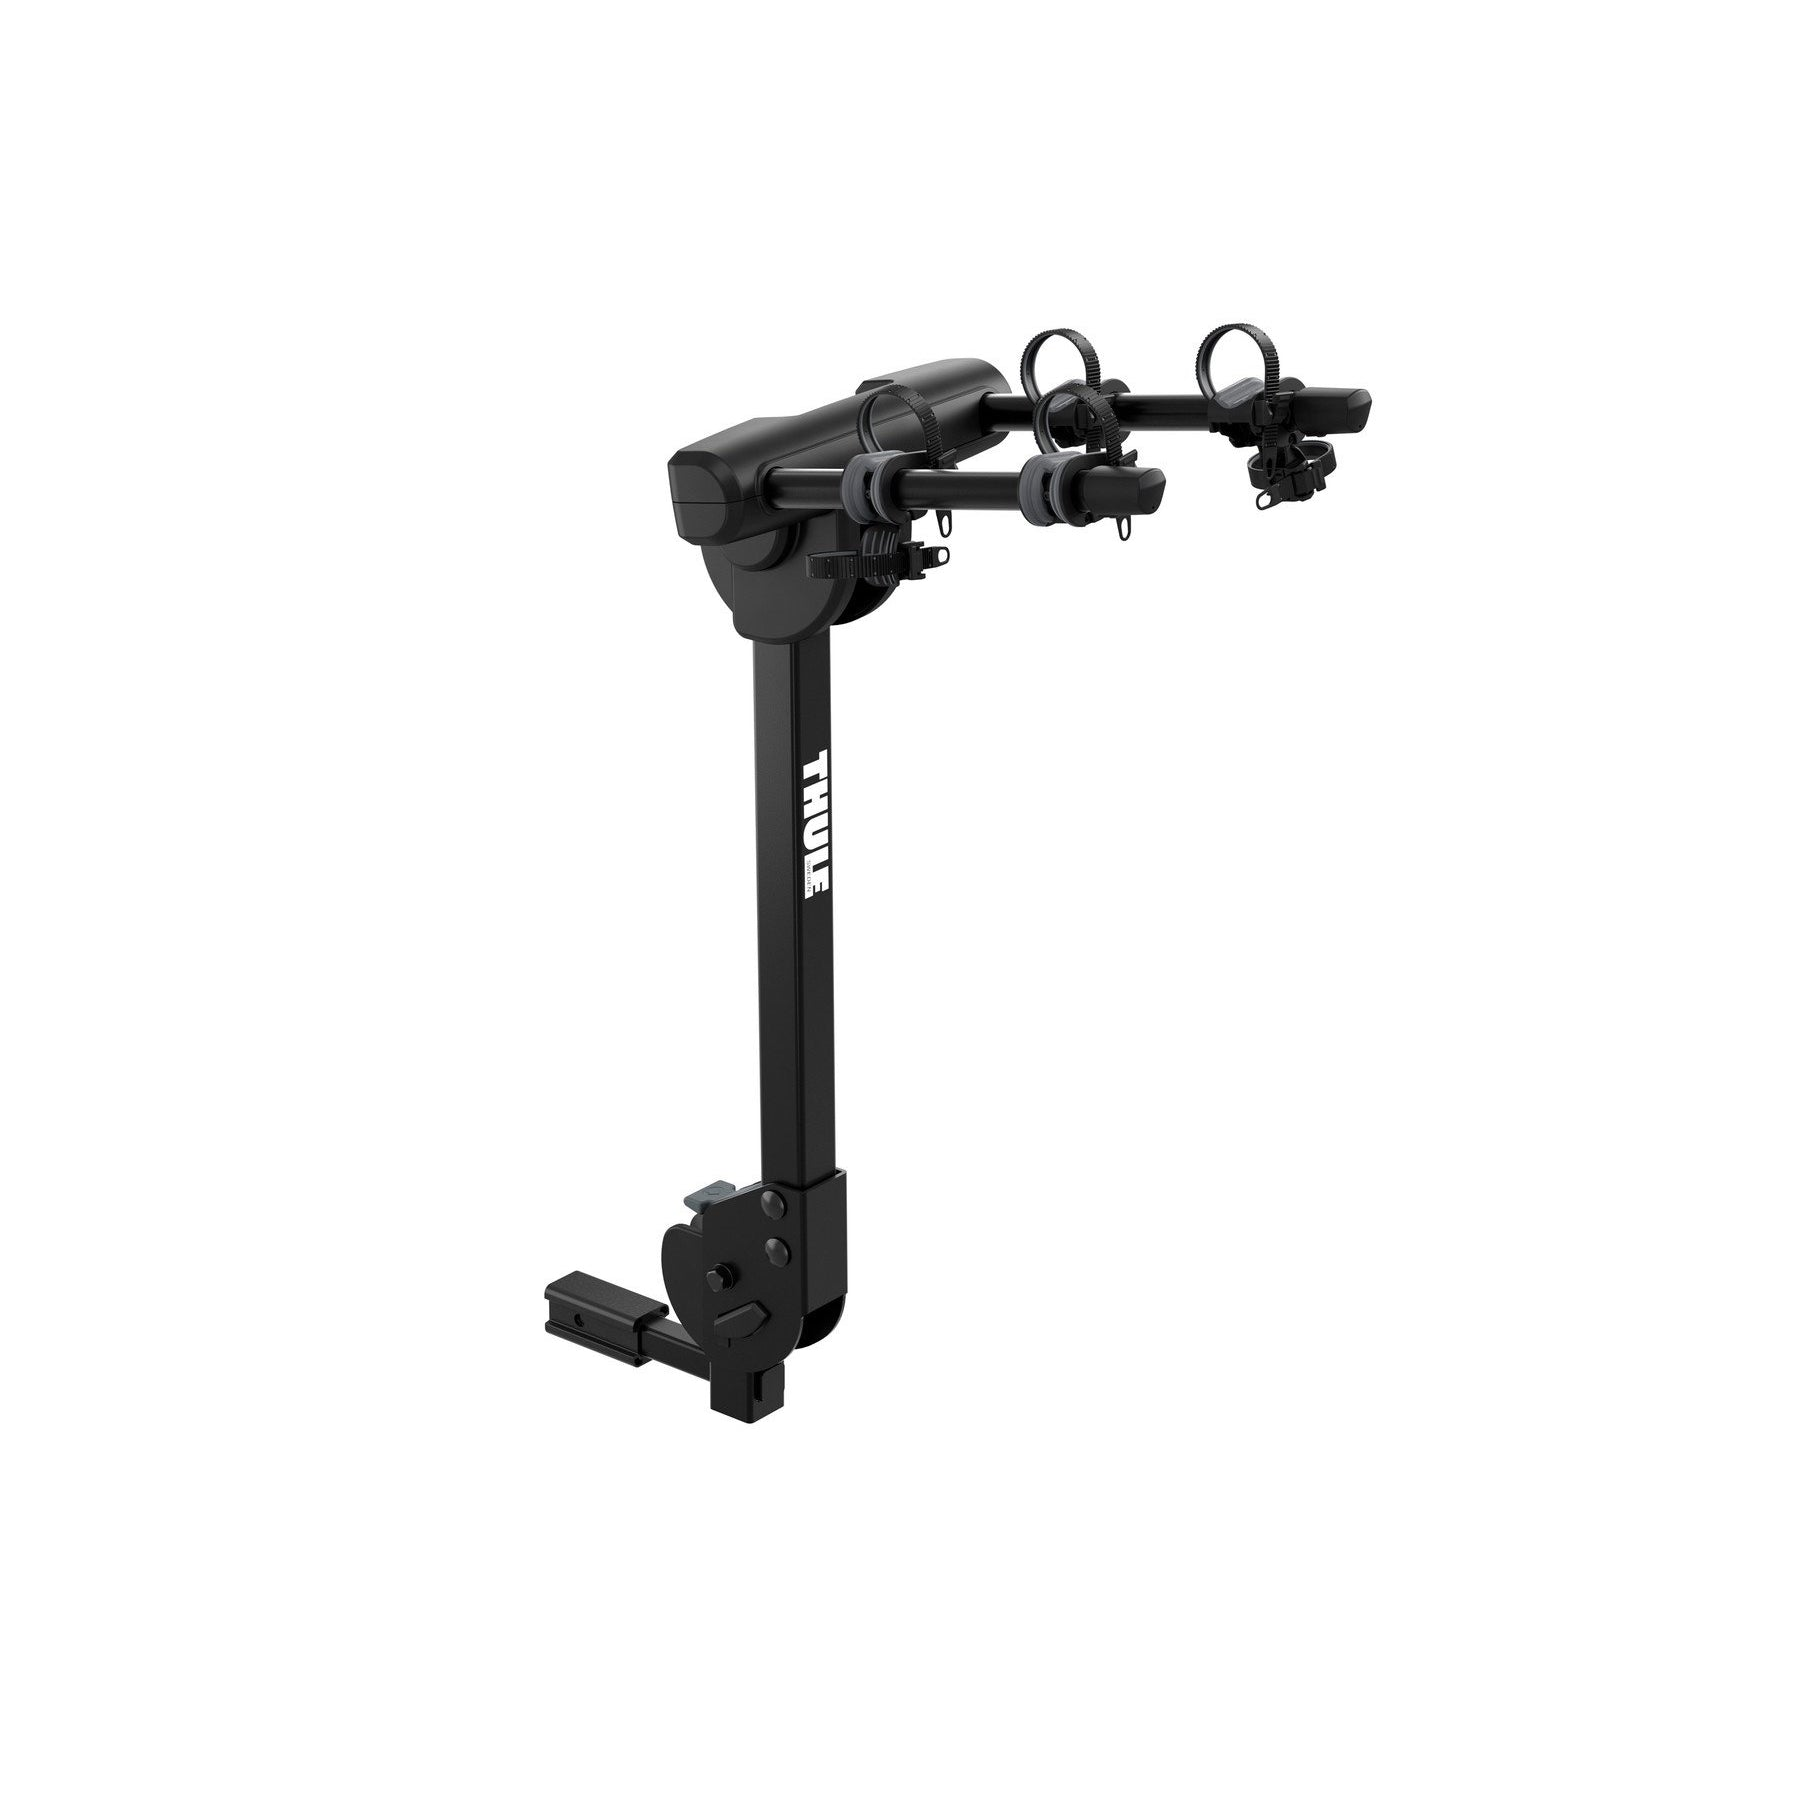 Thule Camber 2 Bike Hitch Rack